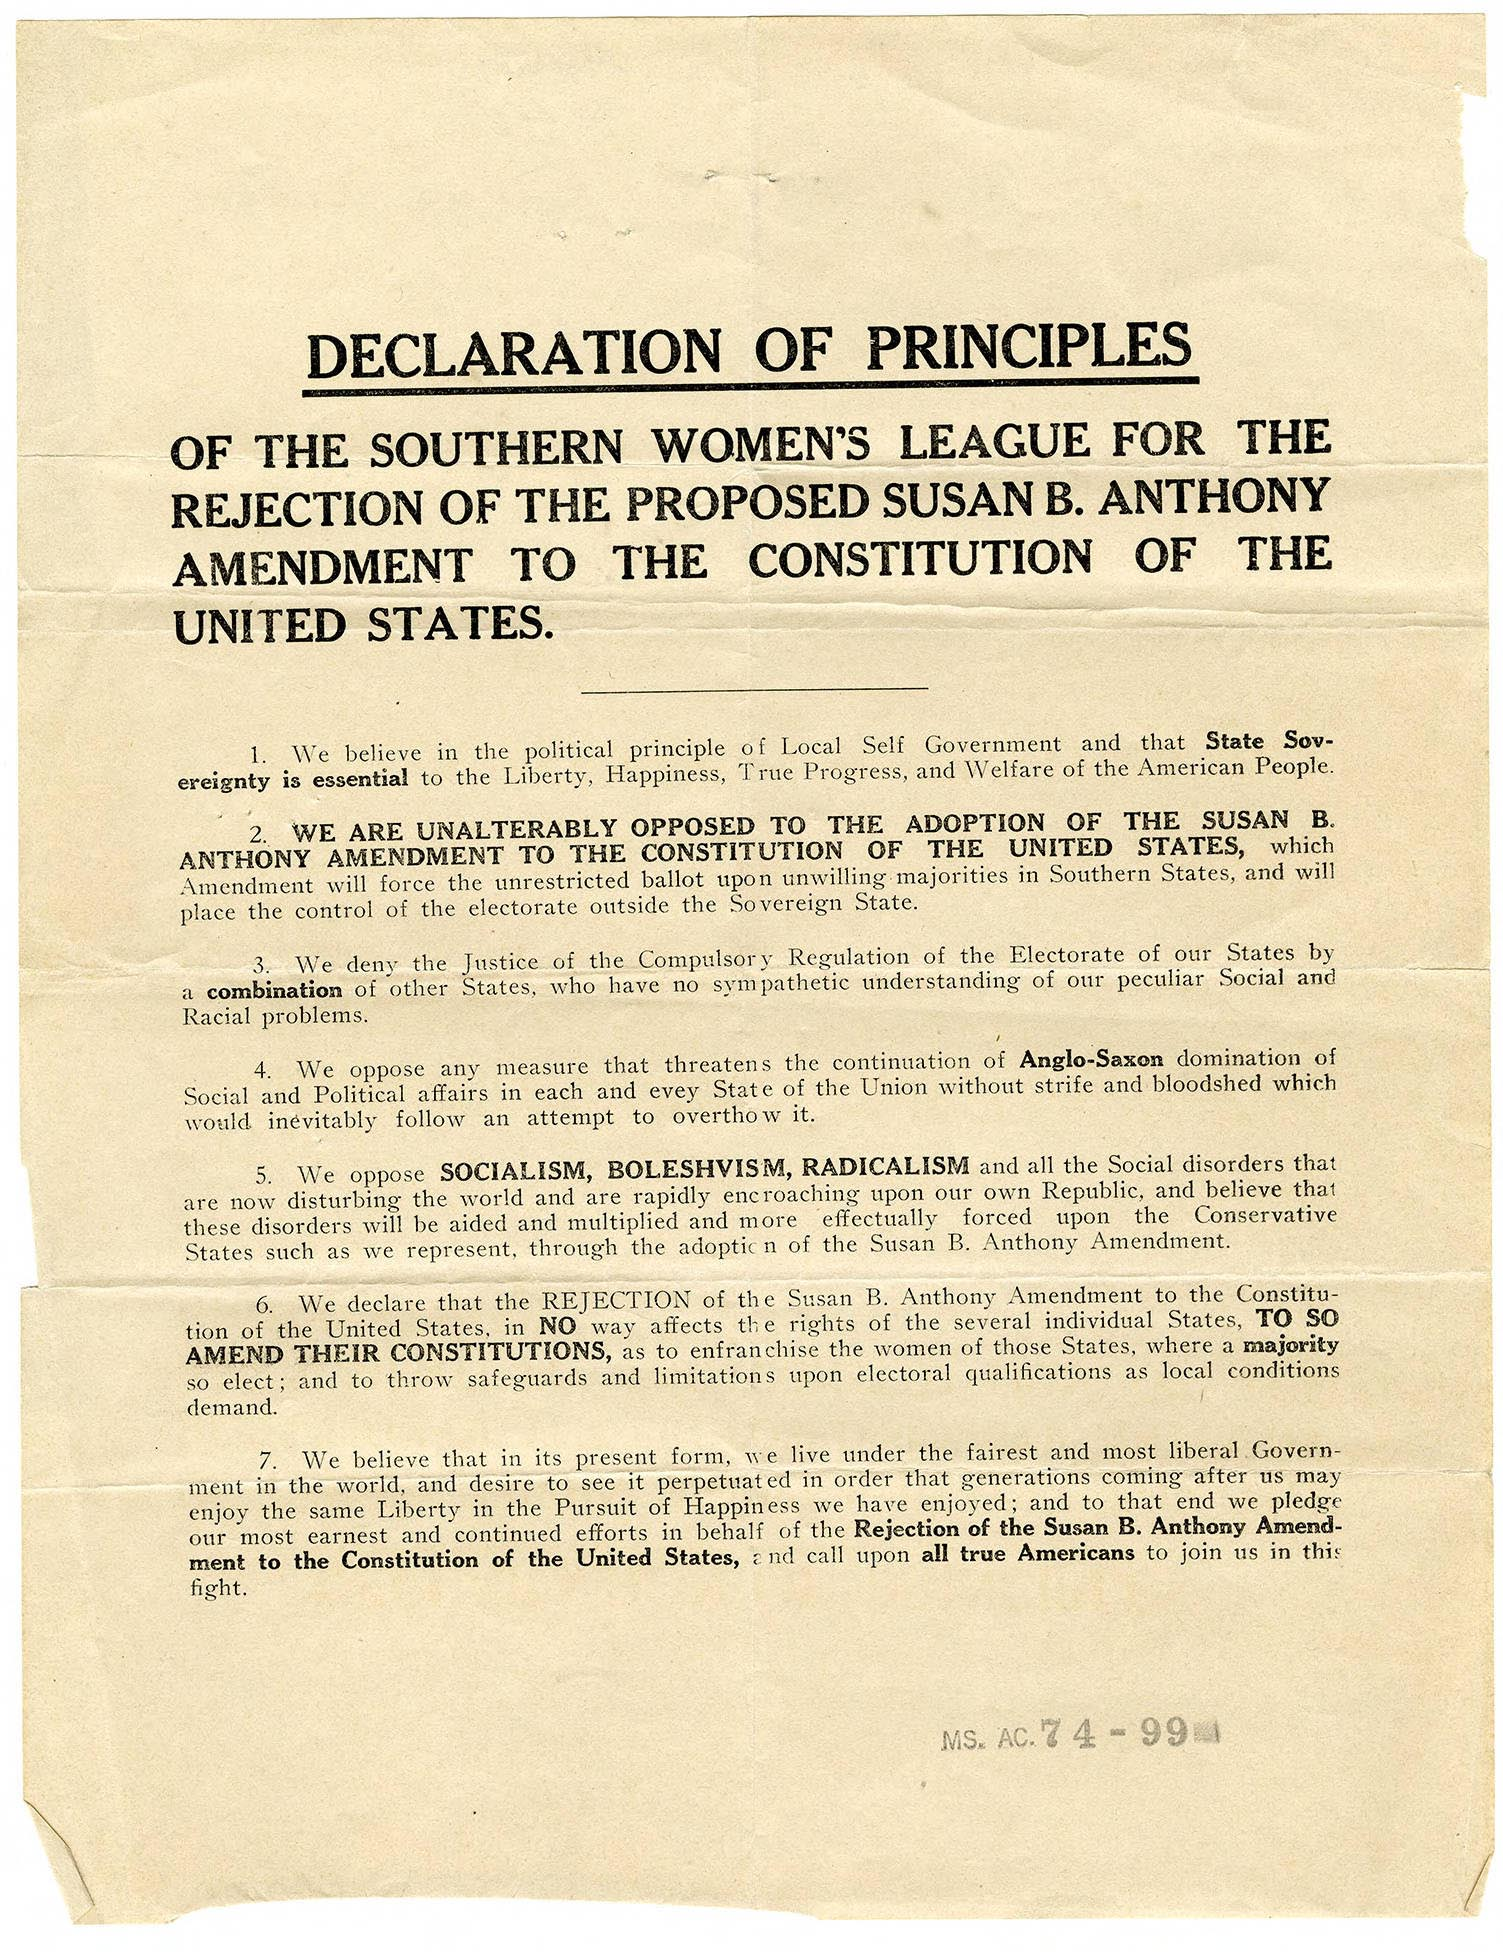 Anti-suffrage document issued by Southern Women's League for the Rejection of the Susan B. Anthony Amendment